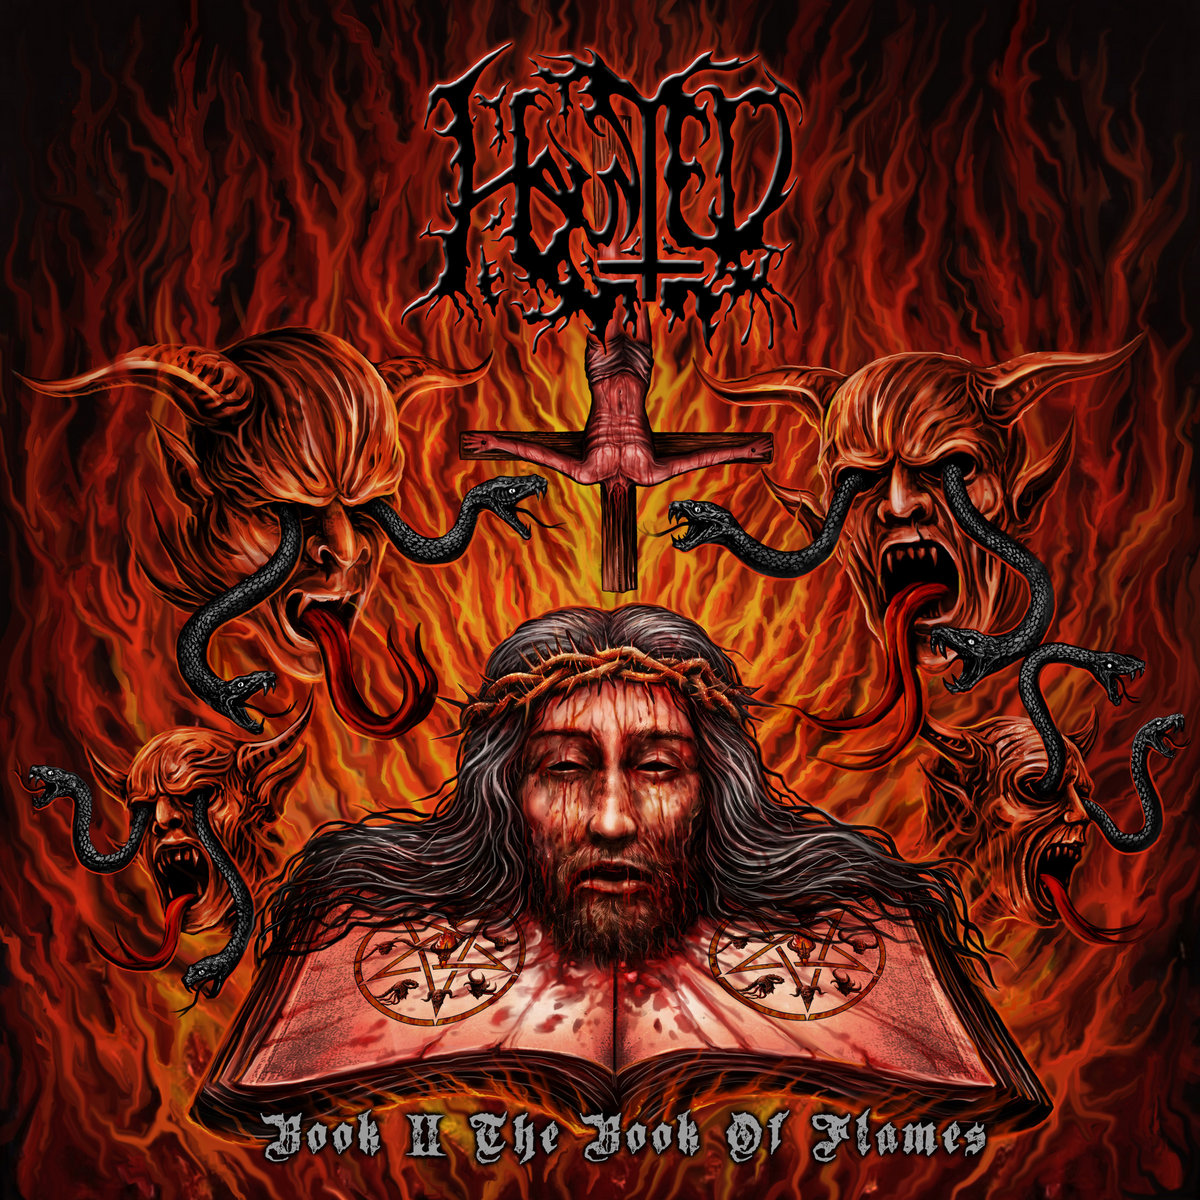 Haunted - The Book of Flames (2021)